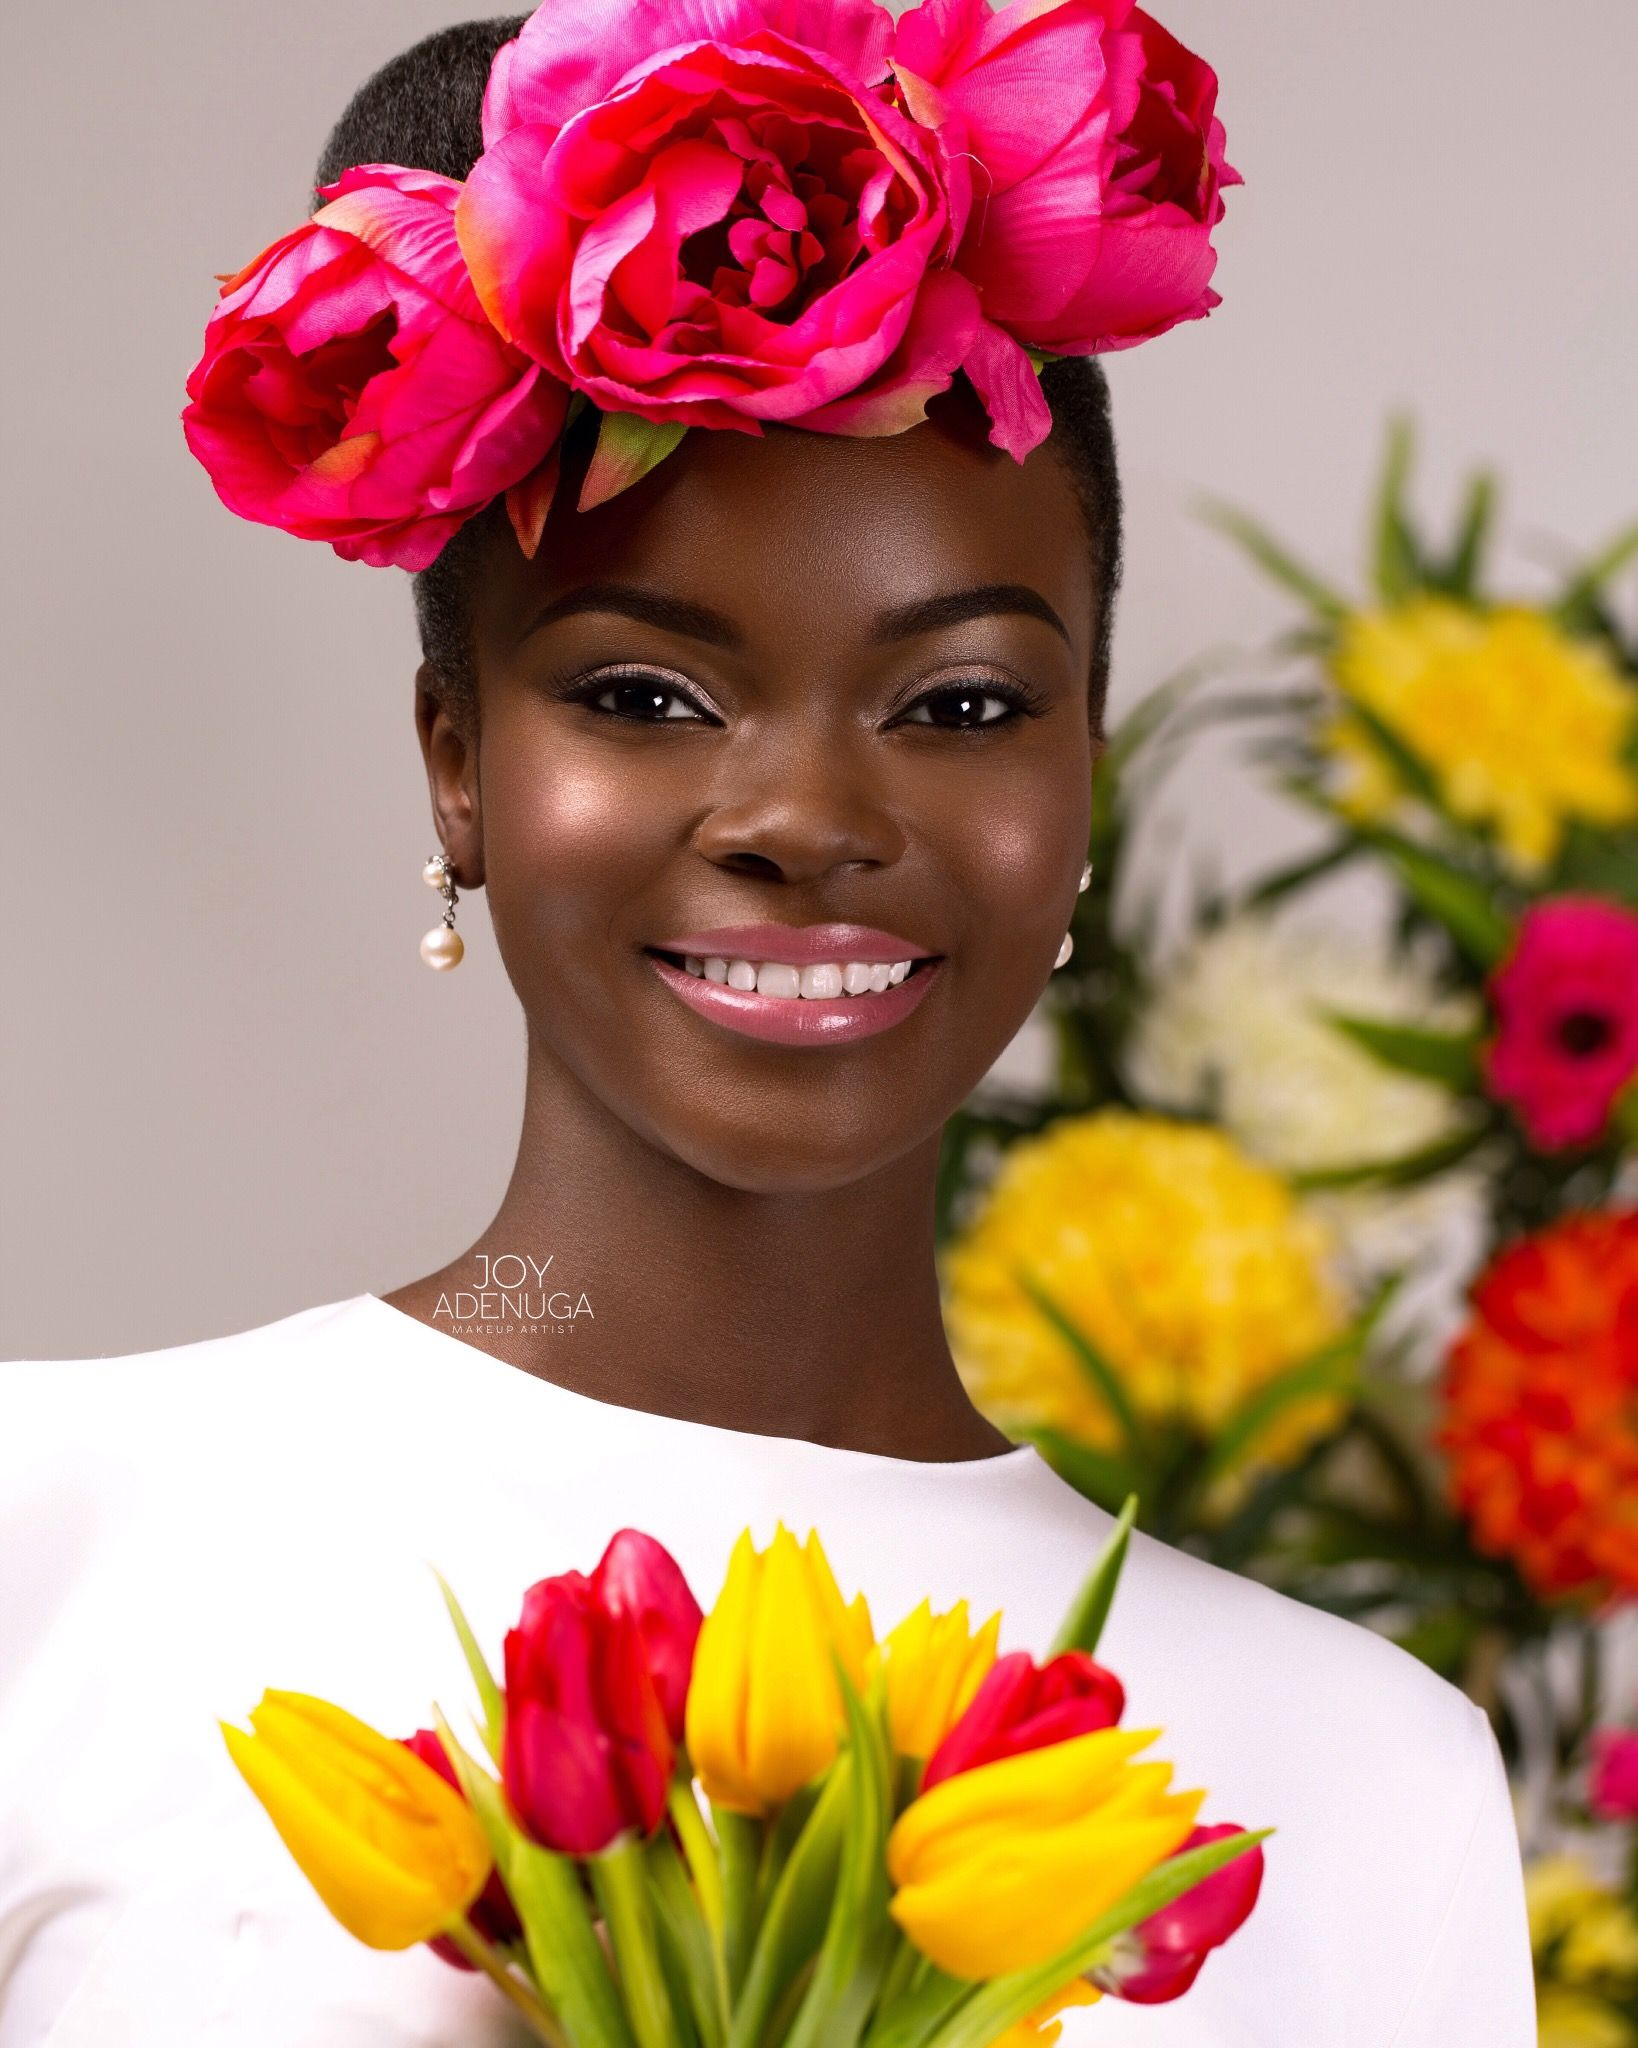 International Bridal Inspiration, joy adenuga, black